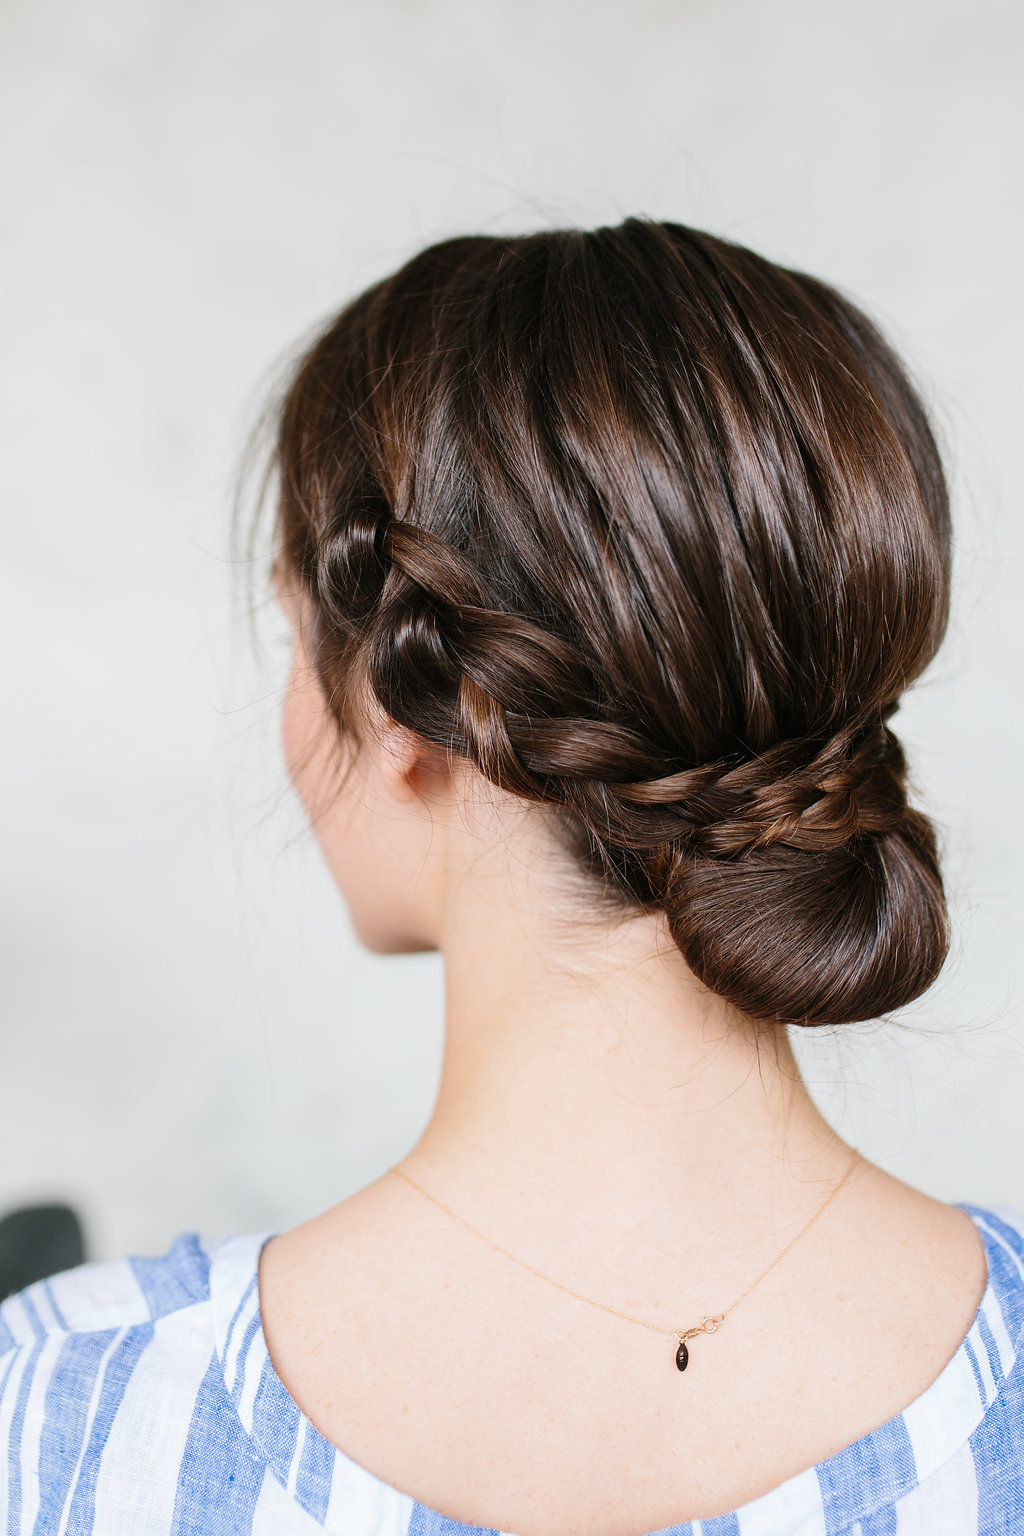 Most Popular Plaited Chignon Braid Hairstyles Pertaining To How To Do A Braided Bun Hair Tutorial – The Effortless Chic (View 12 of 20)